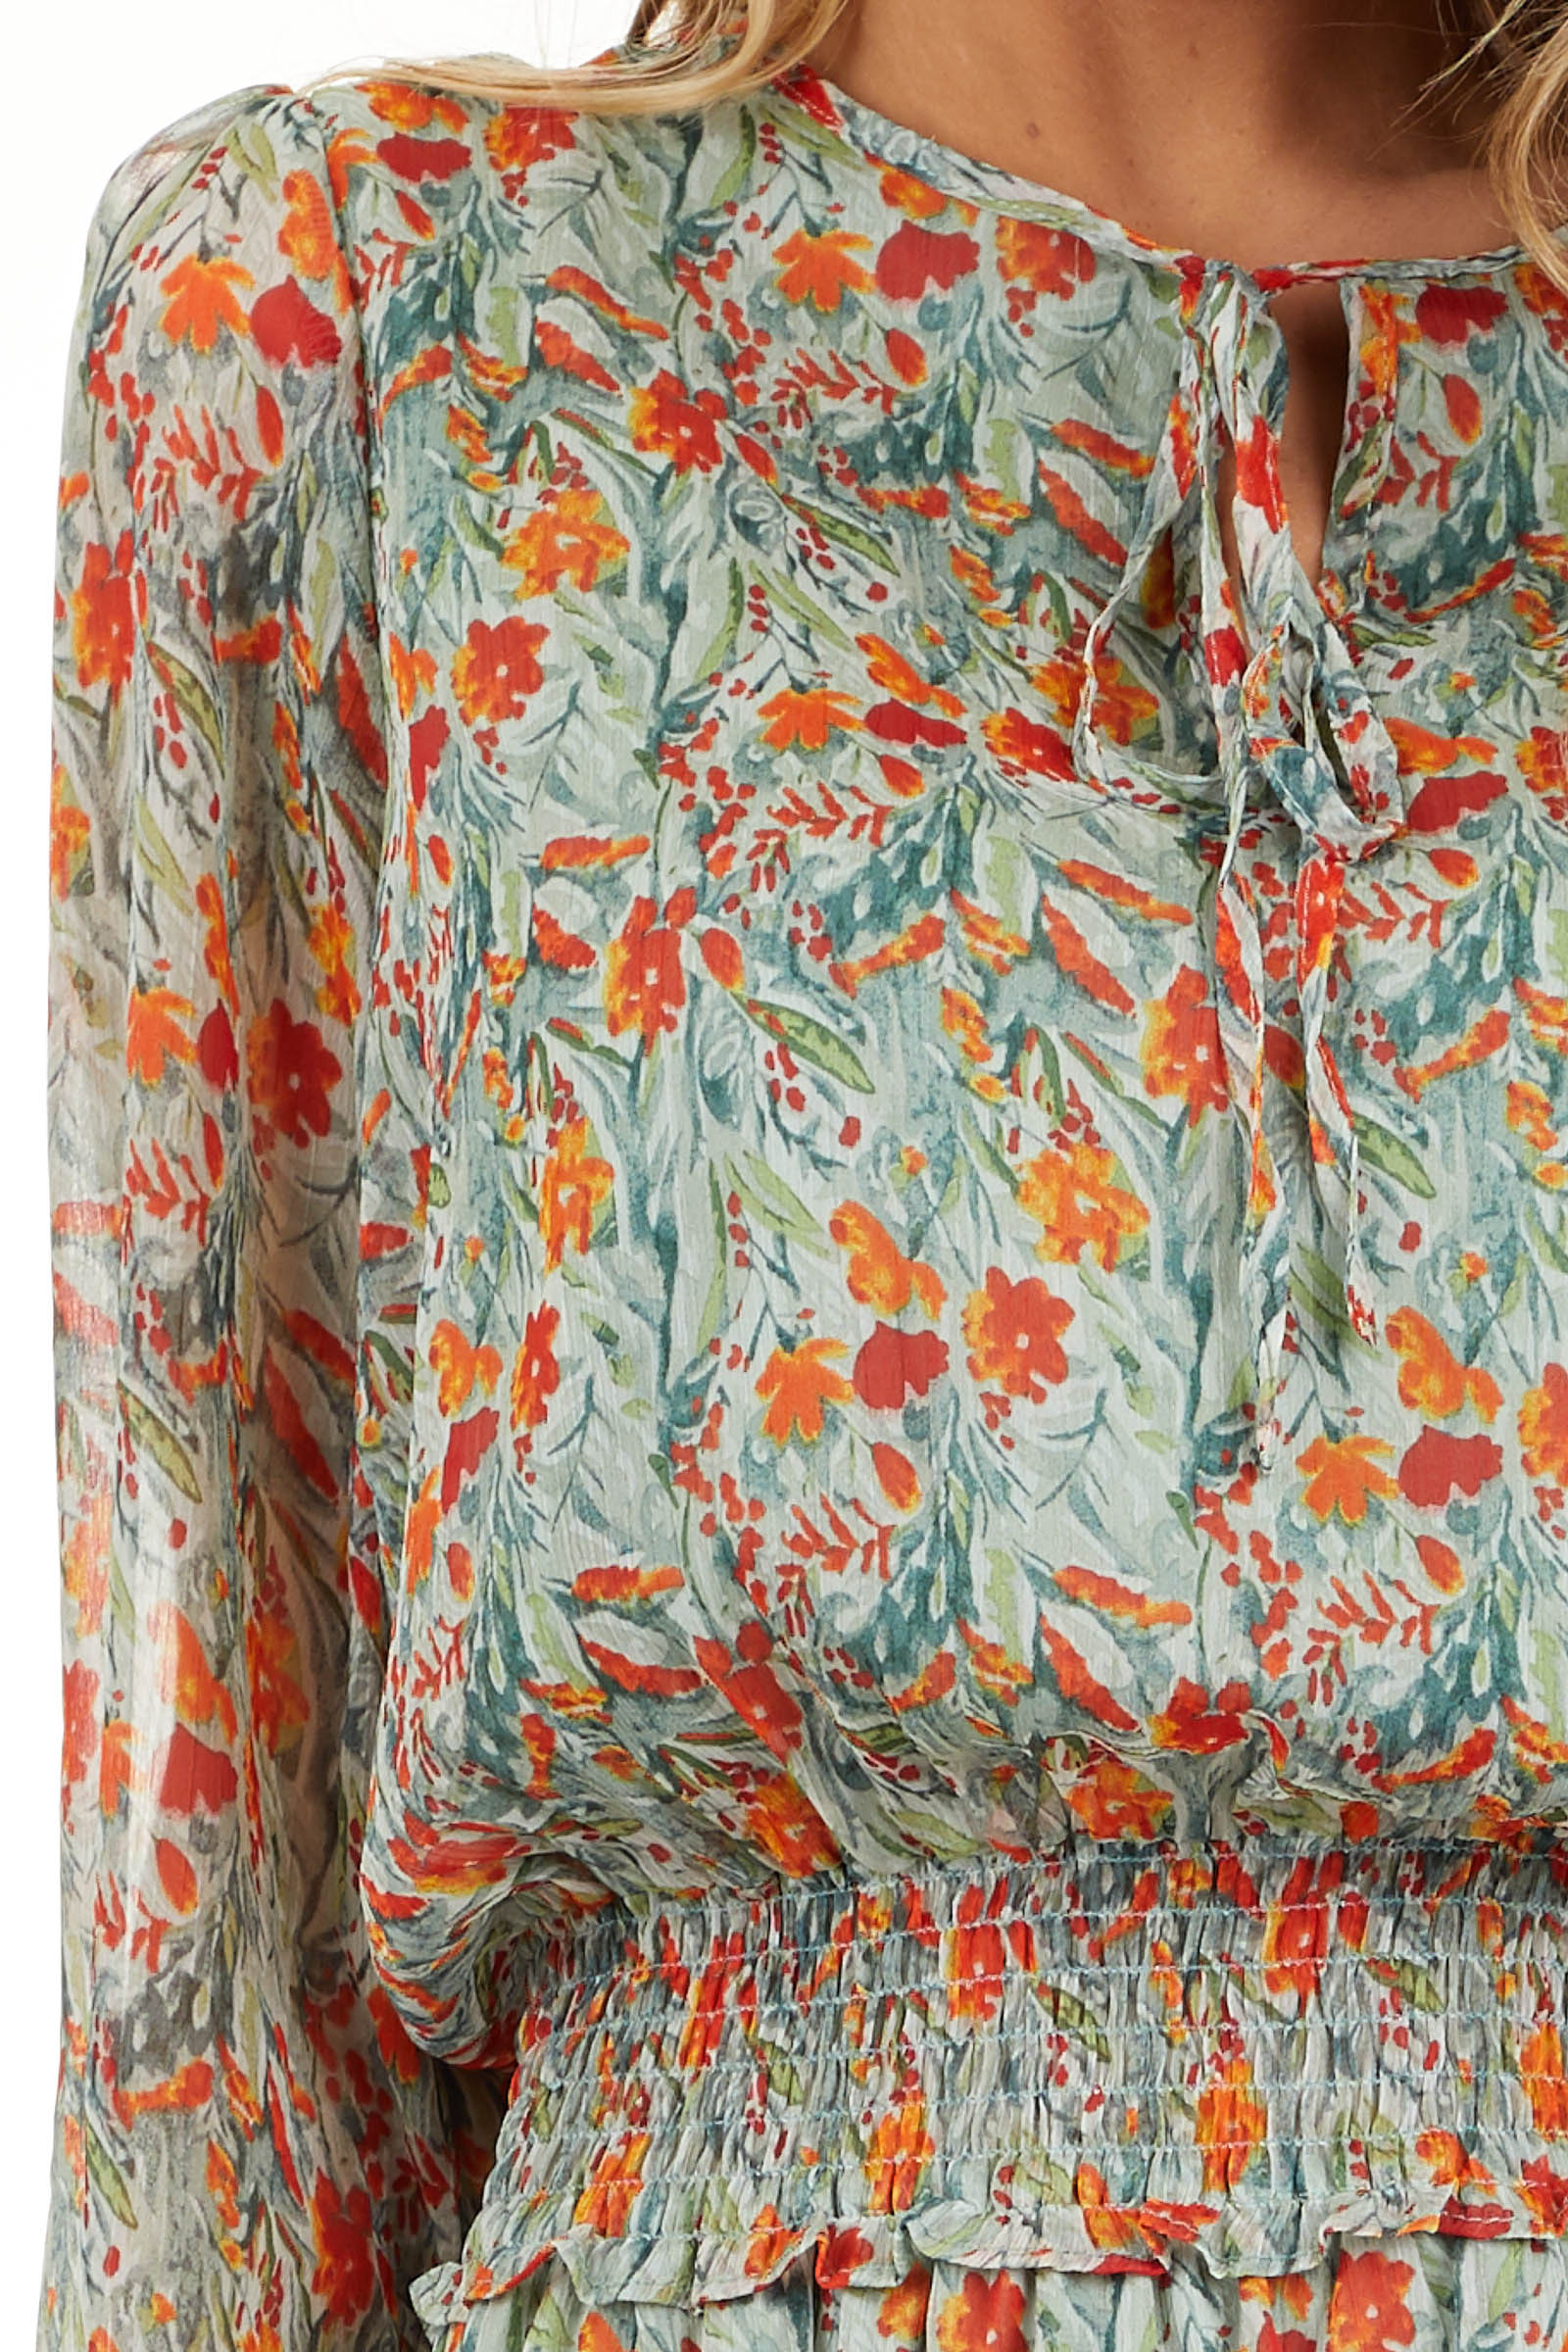 Mint and Tangerine Floral Print Dress with Smocked Waist detail